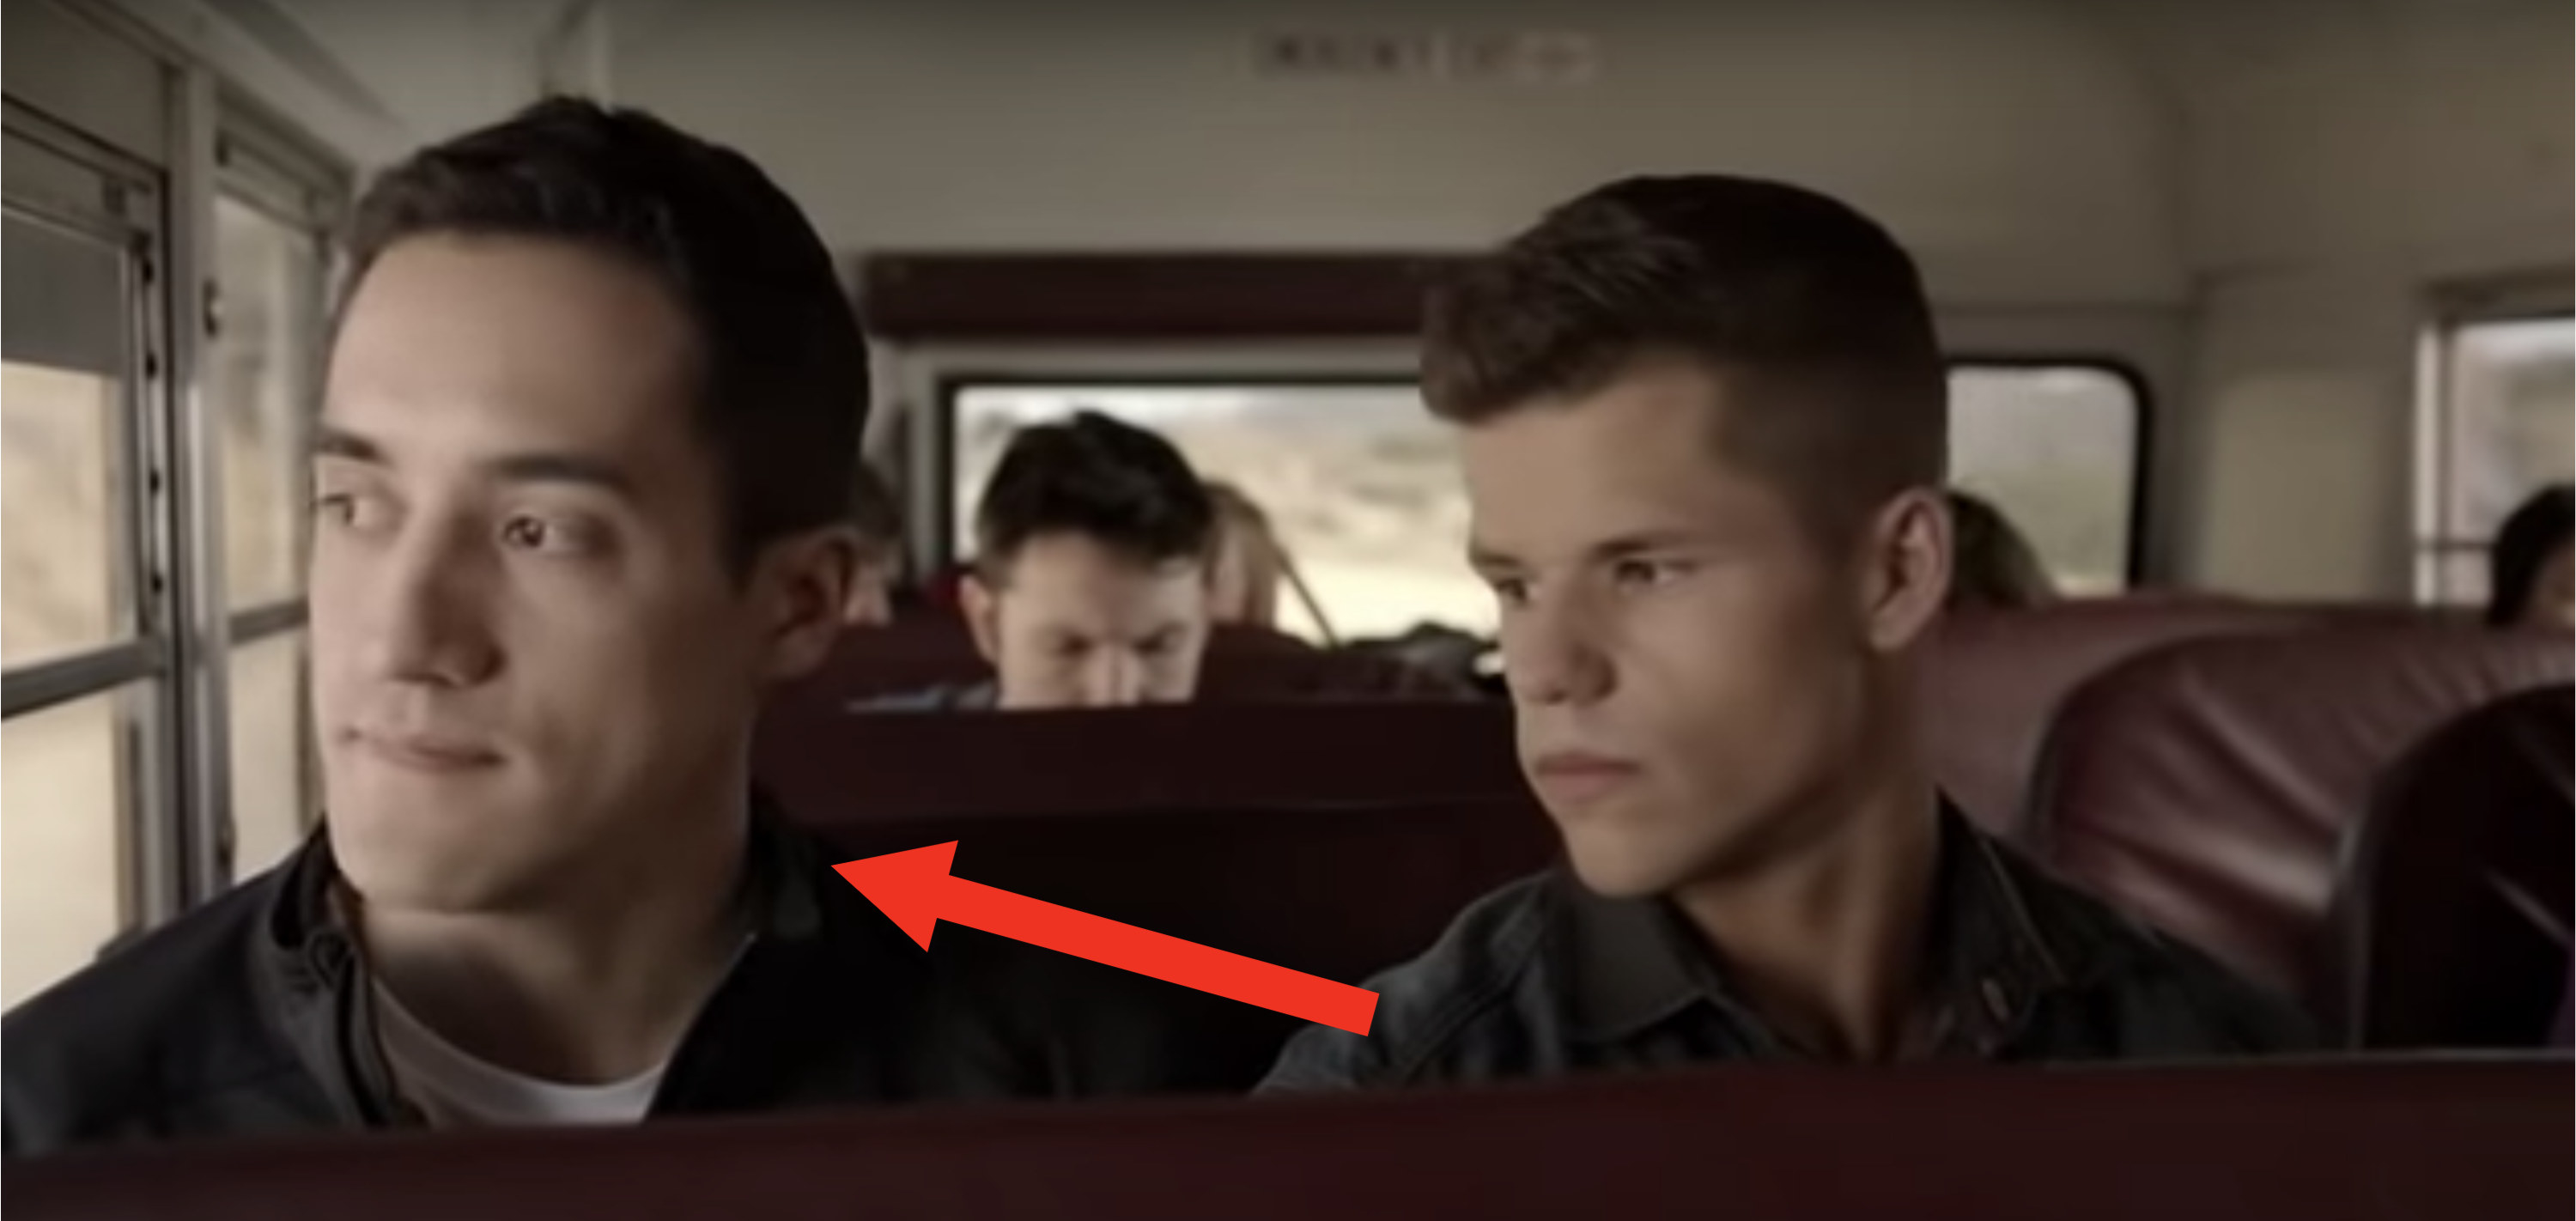 Danny sitting next to Ethan on the bus